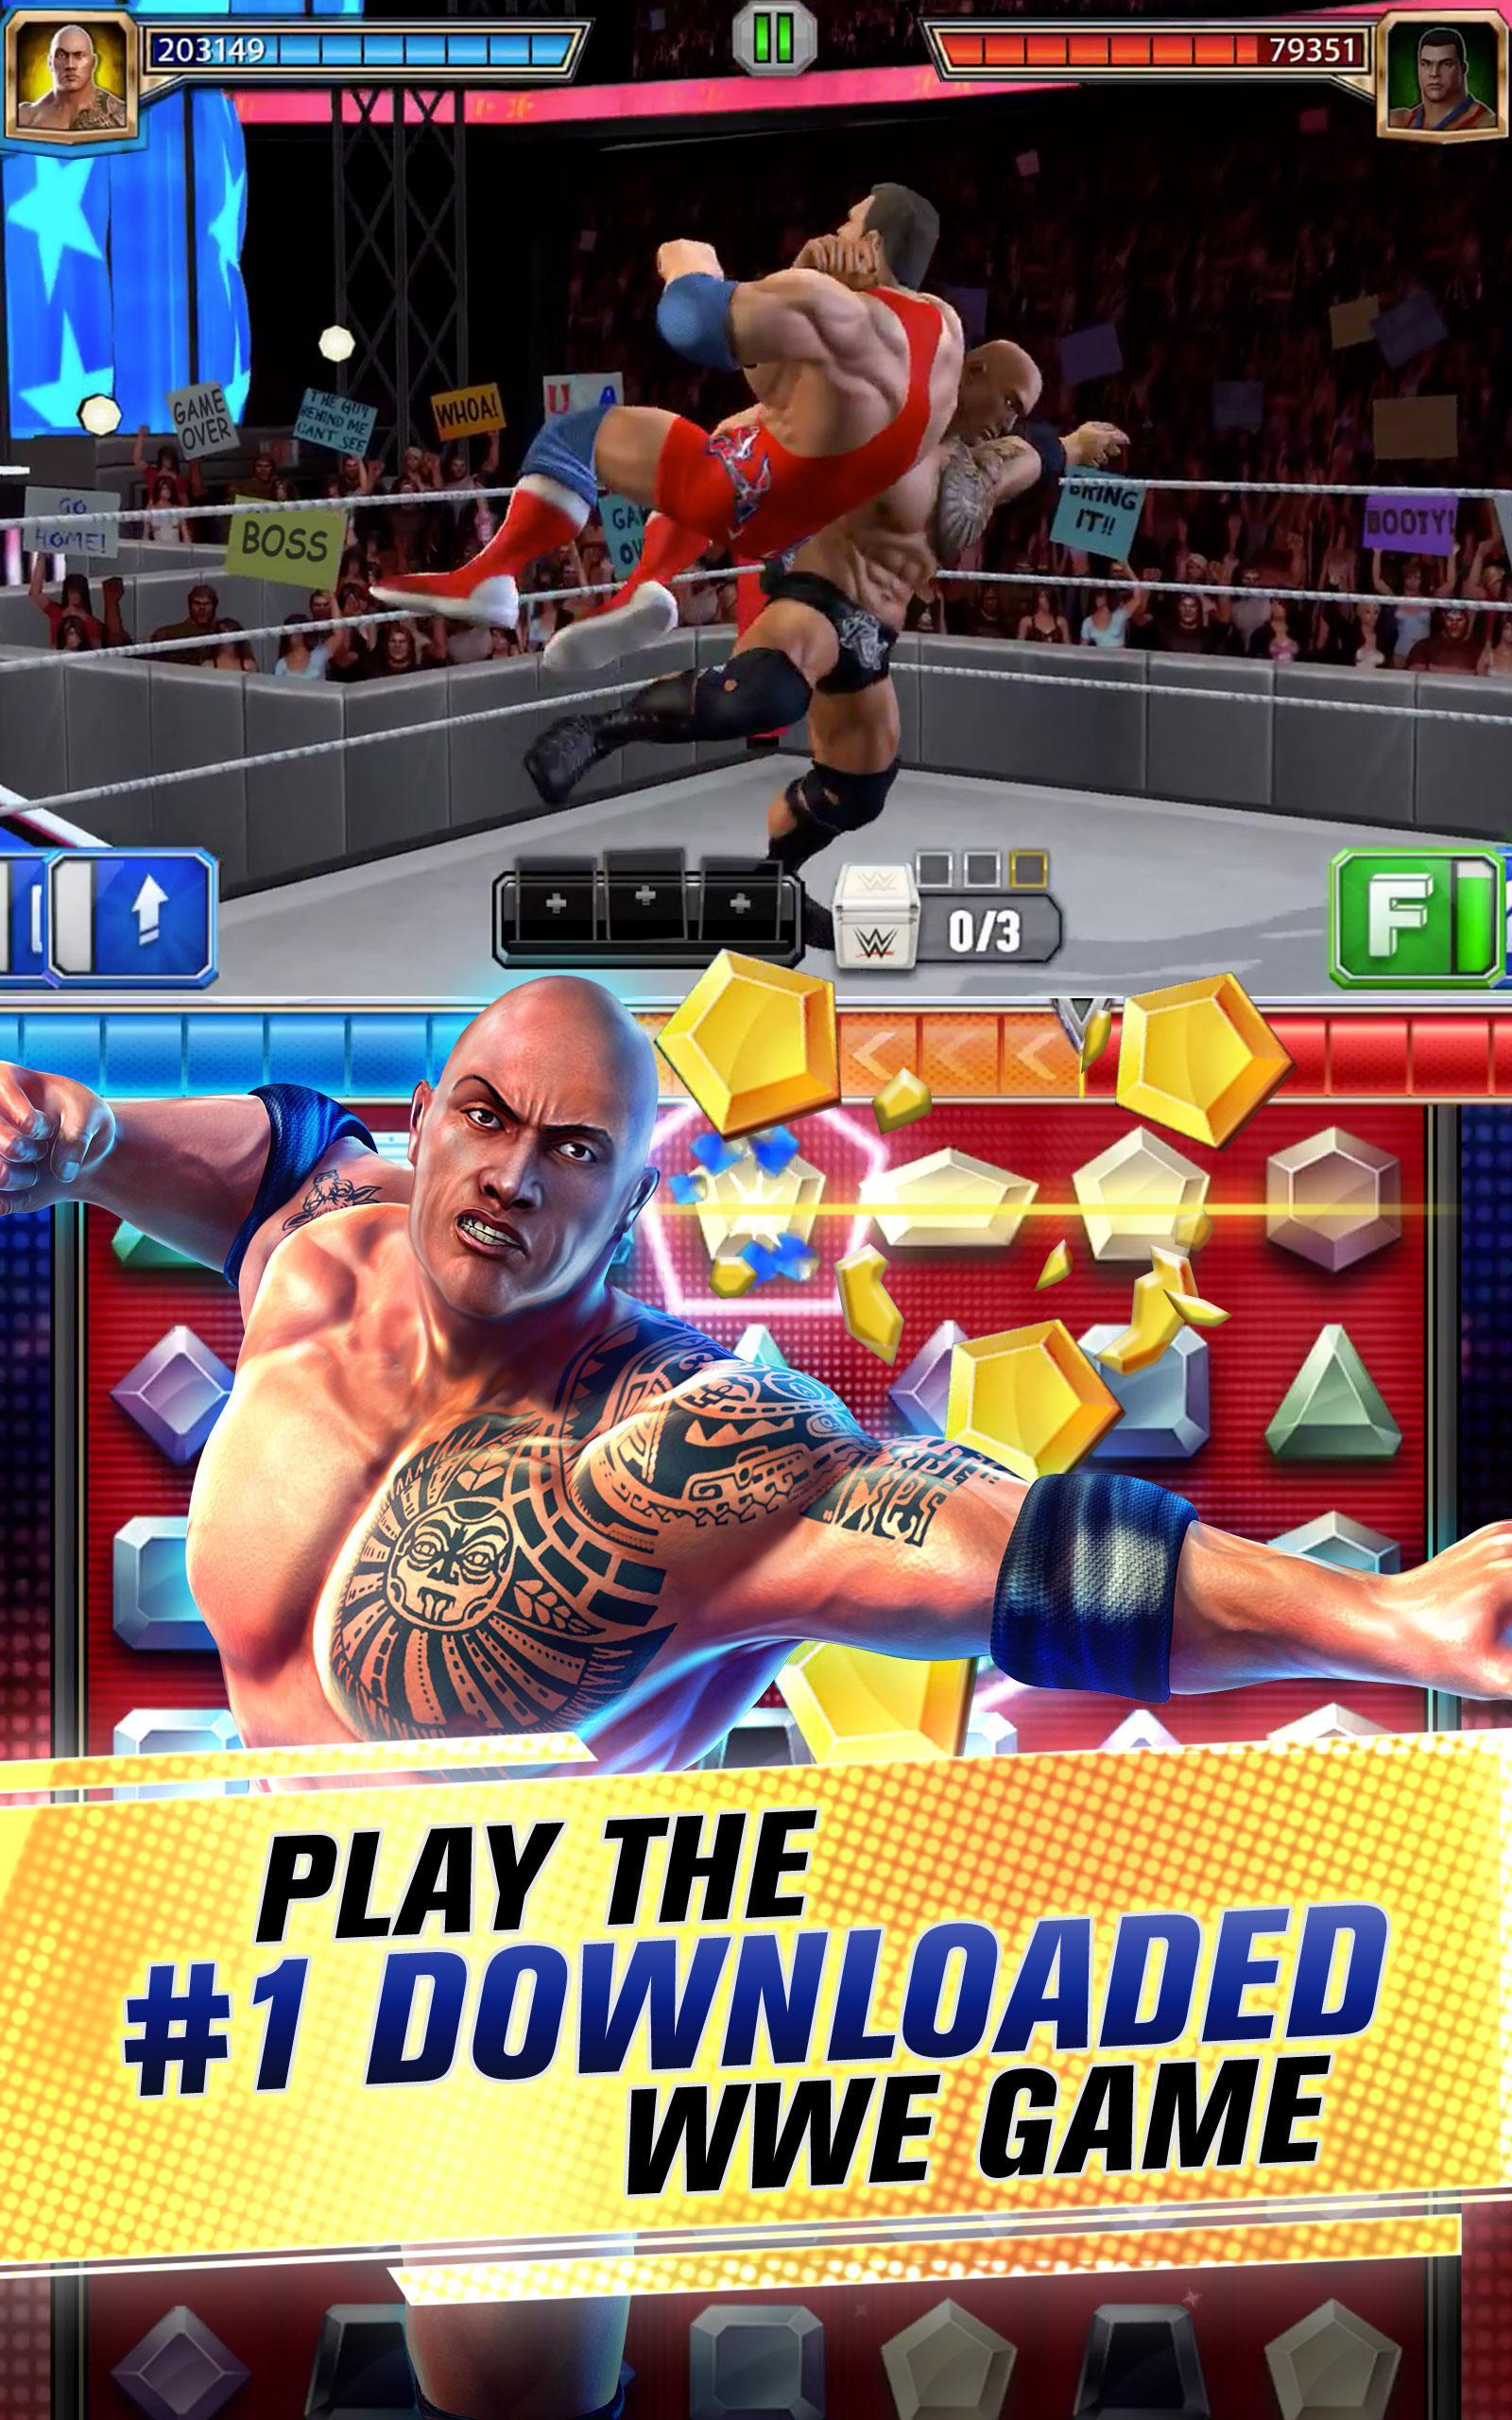 WWE Champions 2019 for Android - APK Download